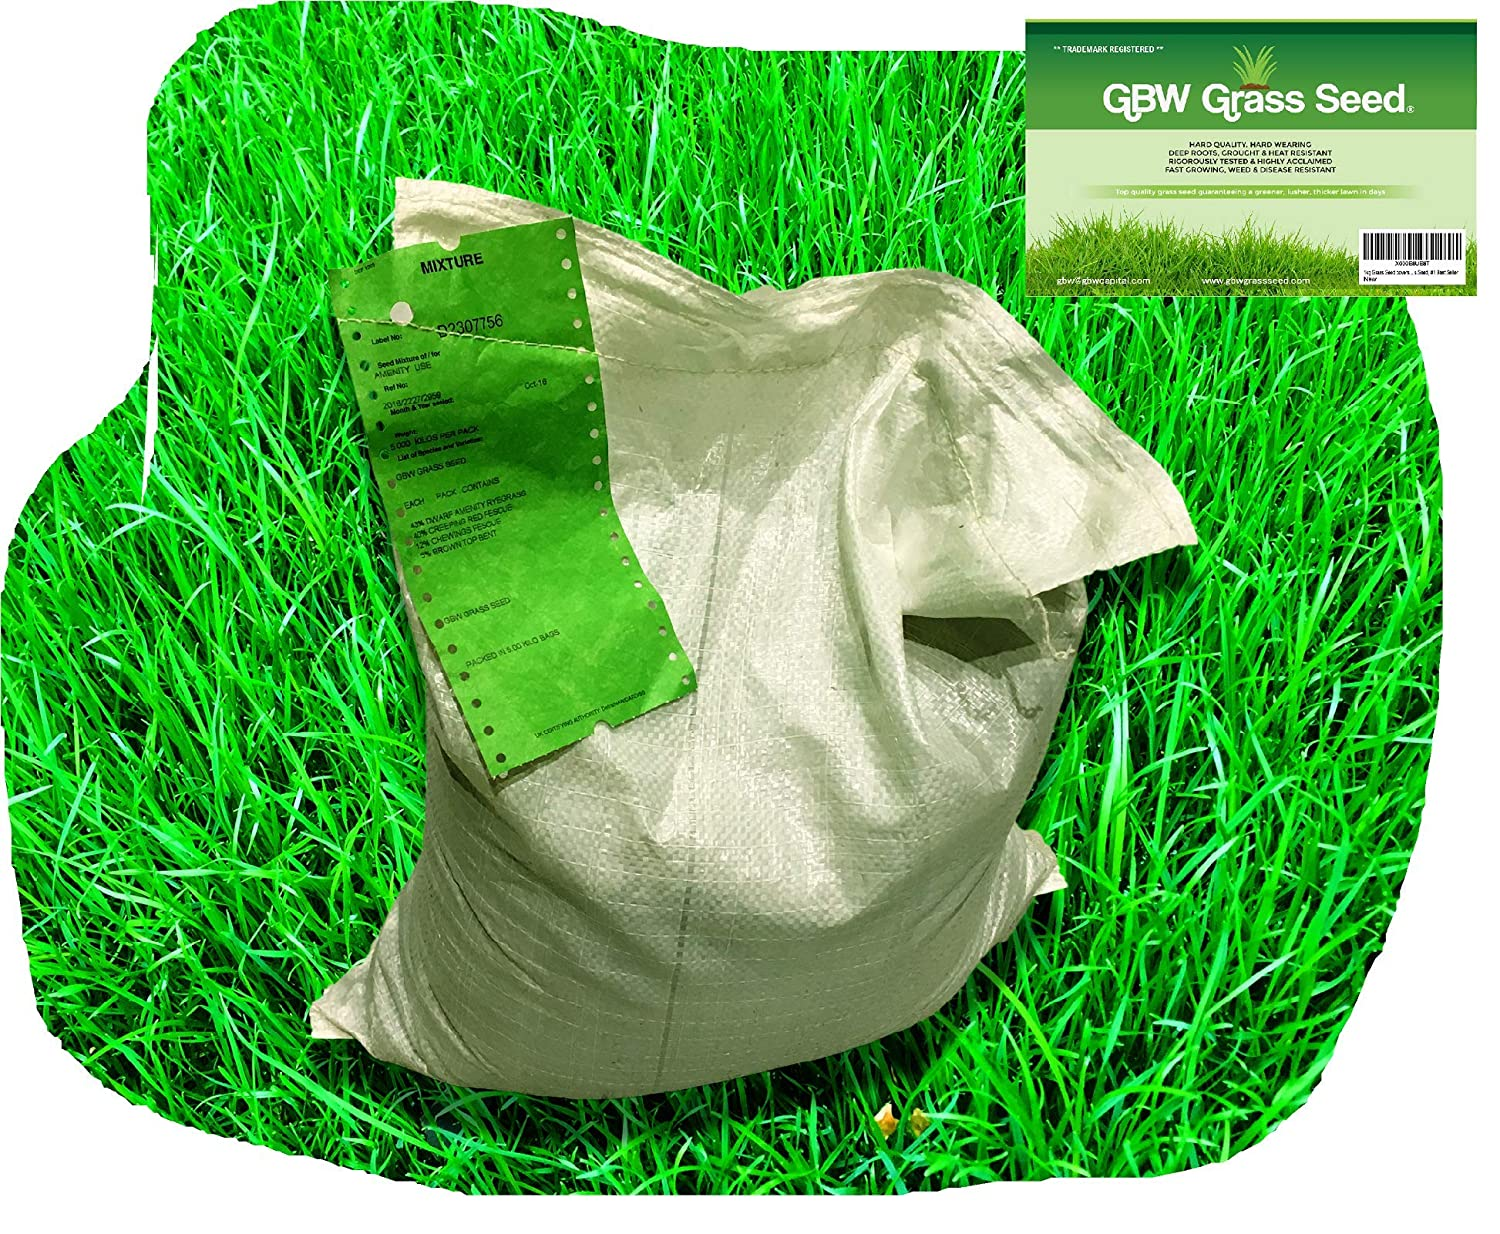 1 kg Grass Seed Covers 35 sqm (380 sq ft) - Premium Quality Seed - Fast Growing - Hard Wearing Lawn Seed - Tailored to UK Climate - Trademark Registered - 100% Refund GS